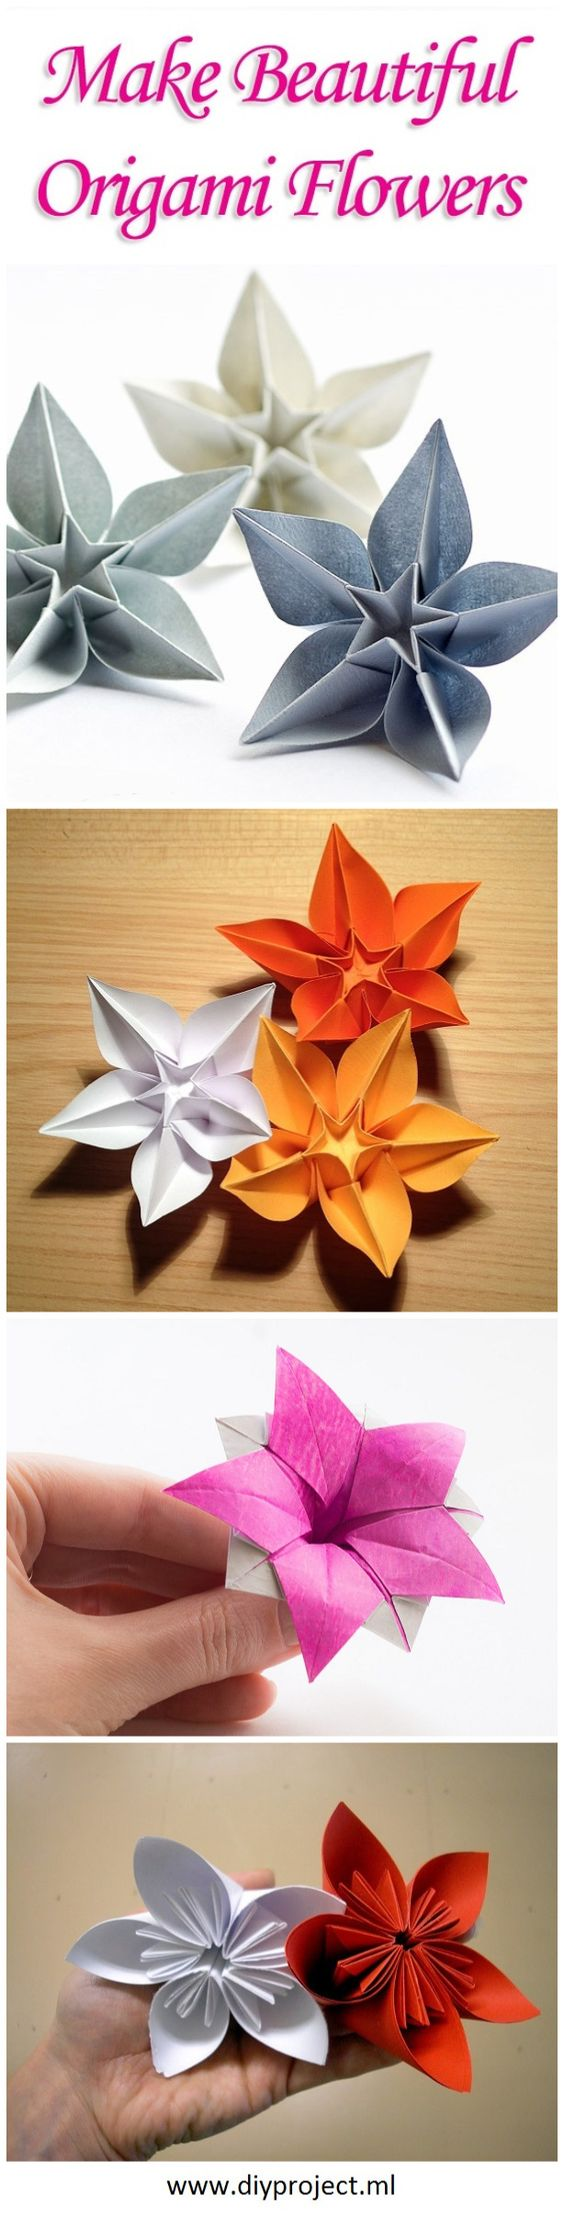 Make Diy Origami Flowers From A Single Sheet Of Paper Without Glue